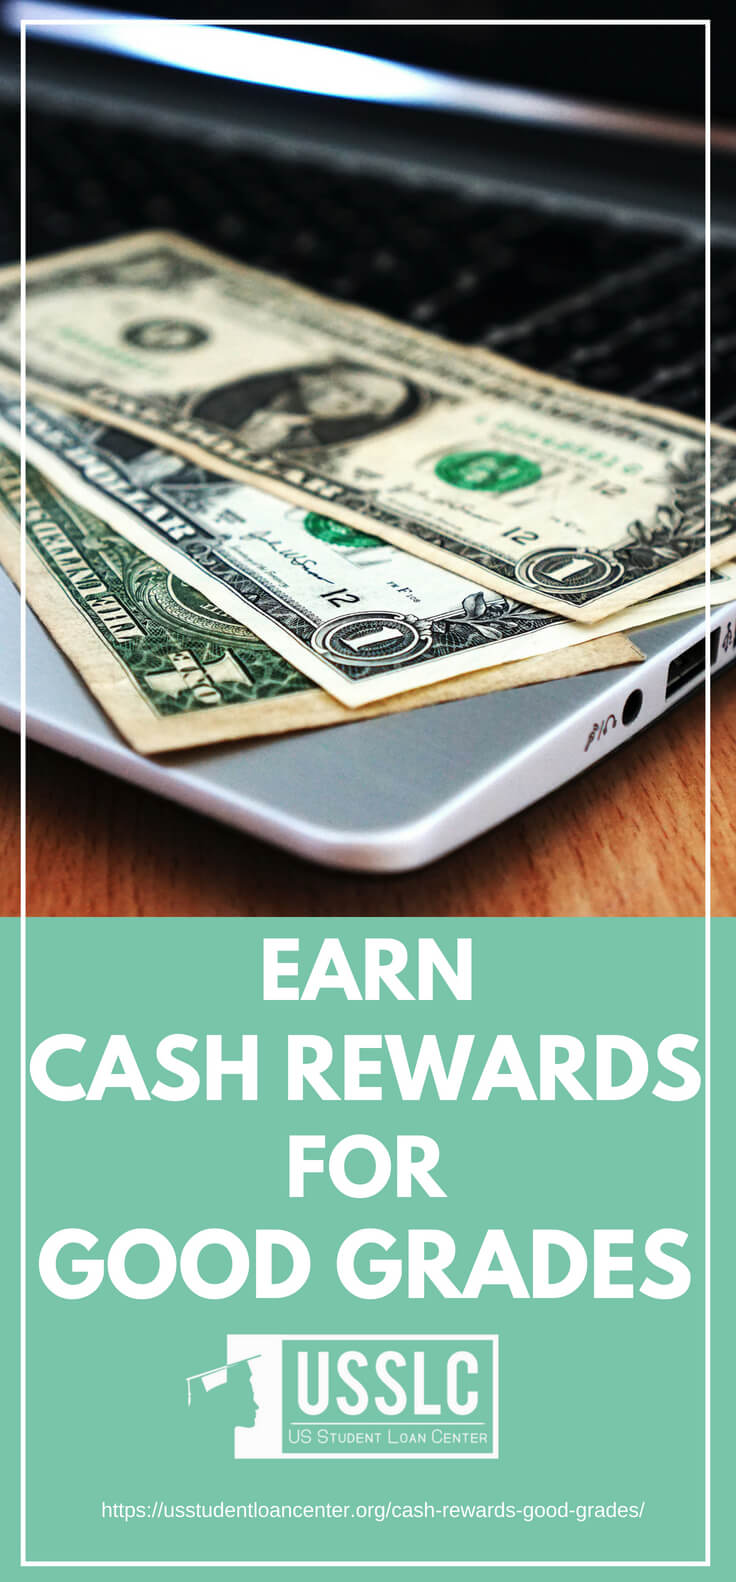 PLACARD | Earn Cash Rewards for Good Grades